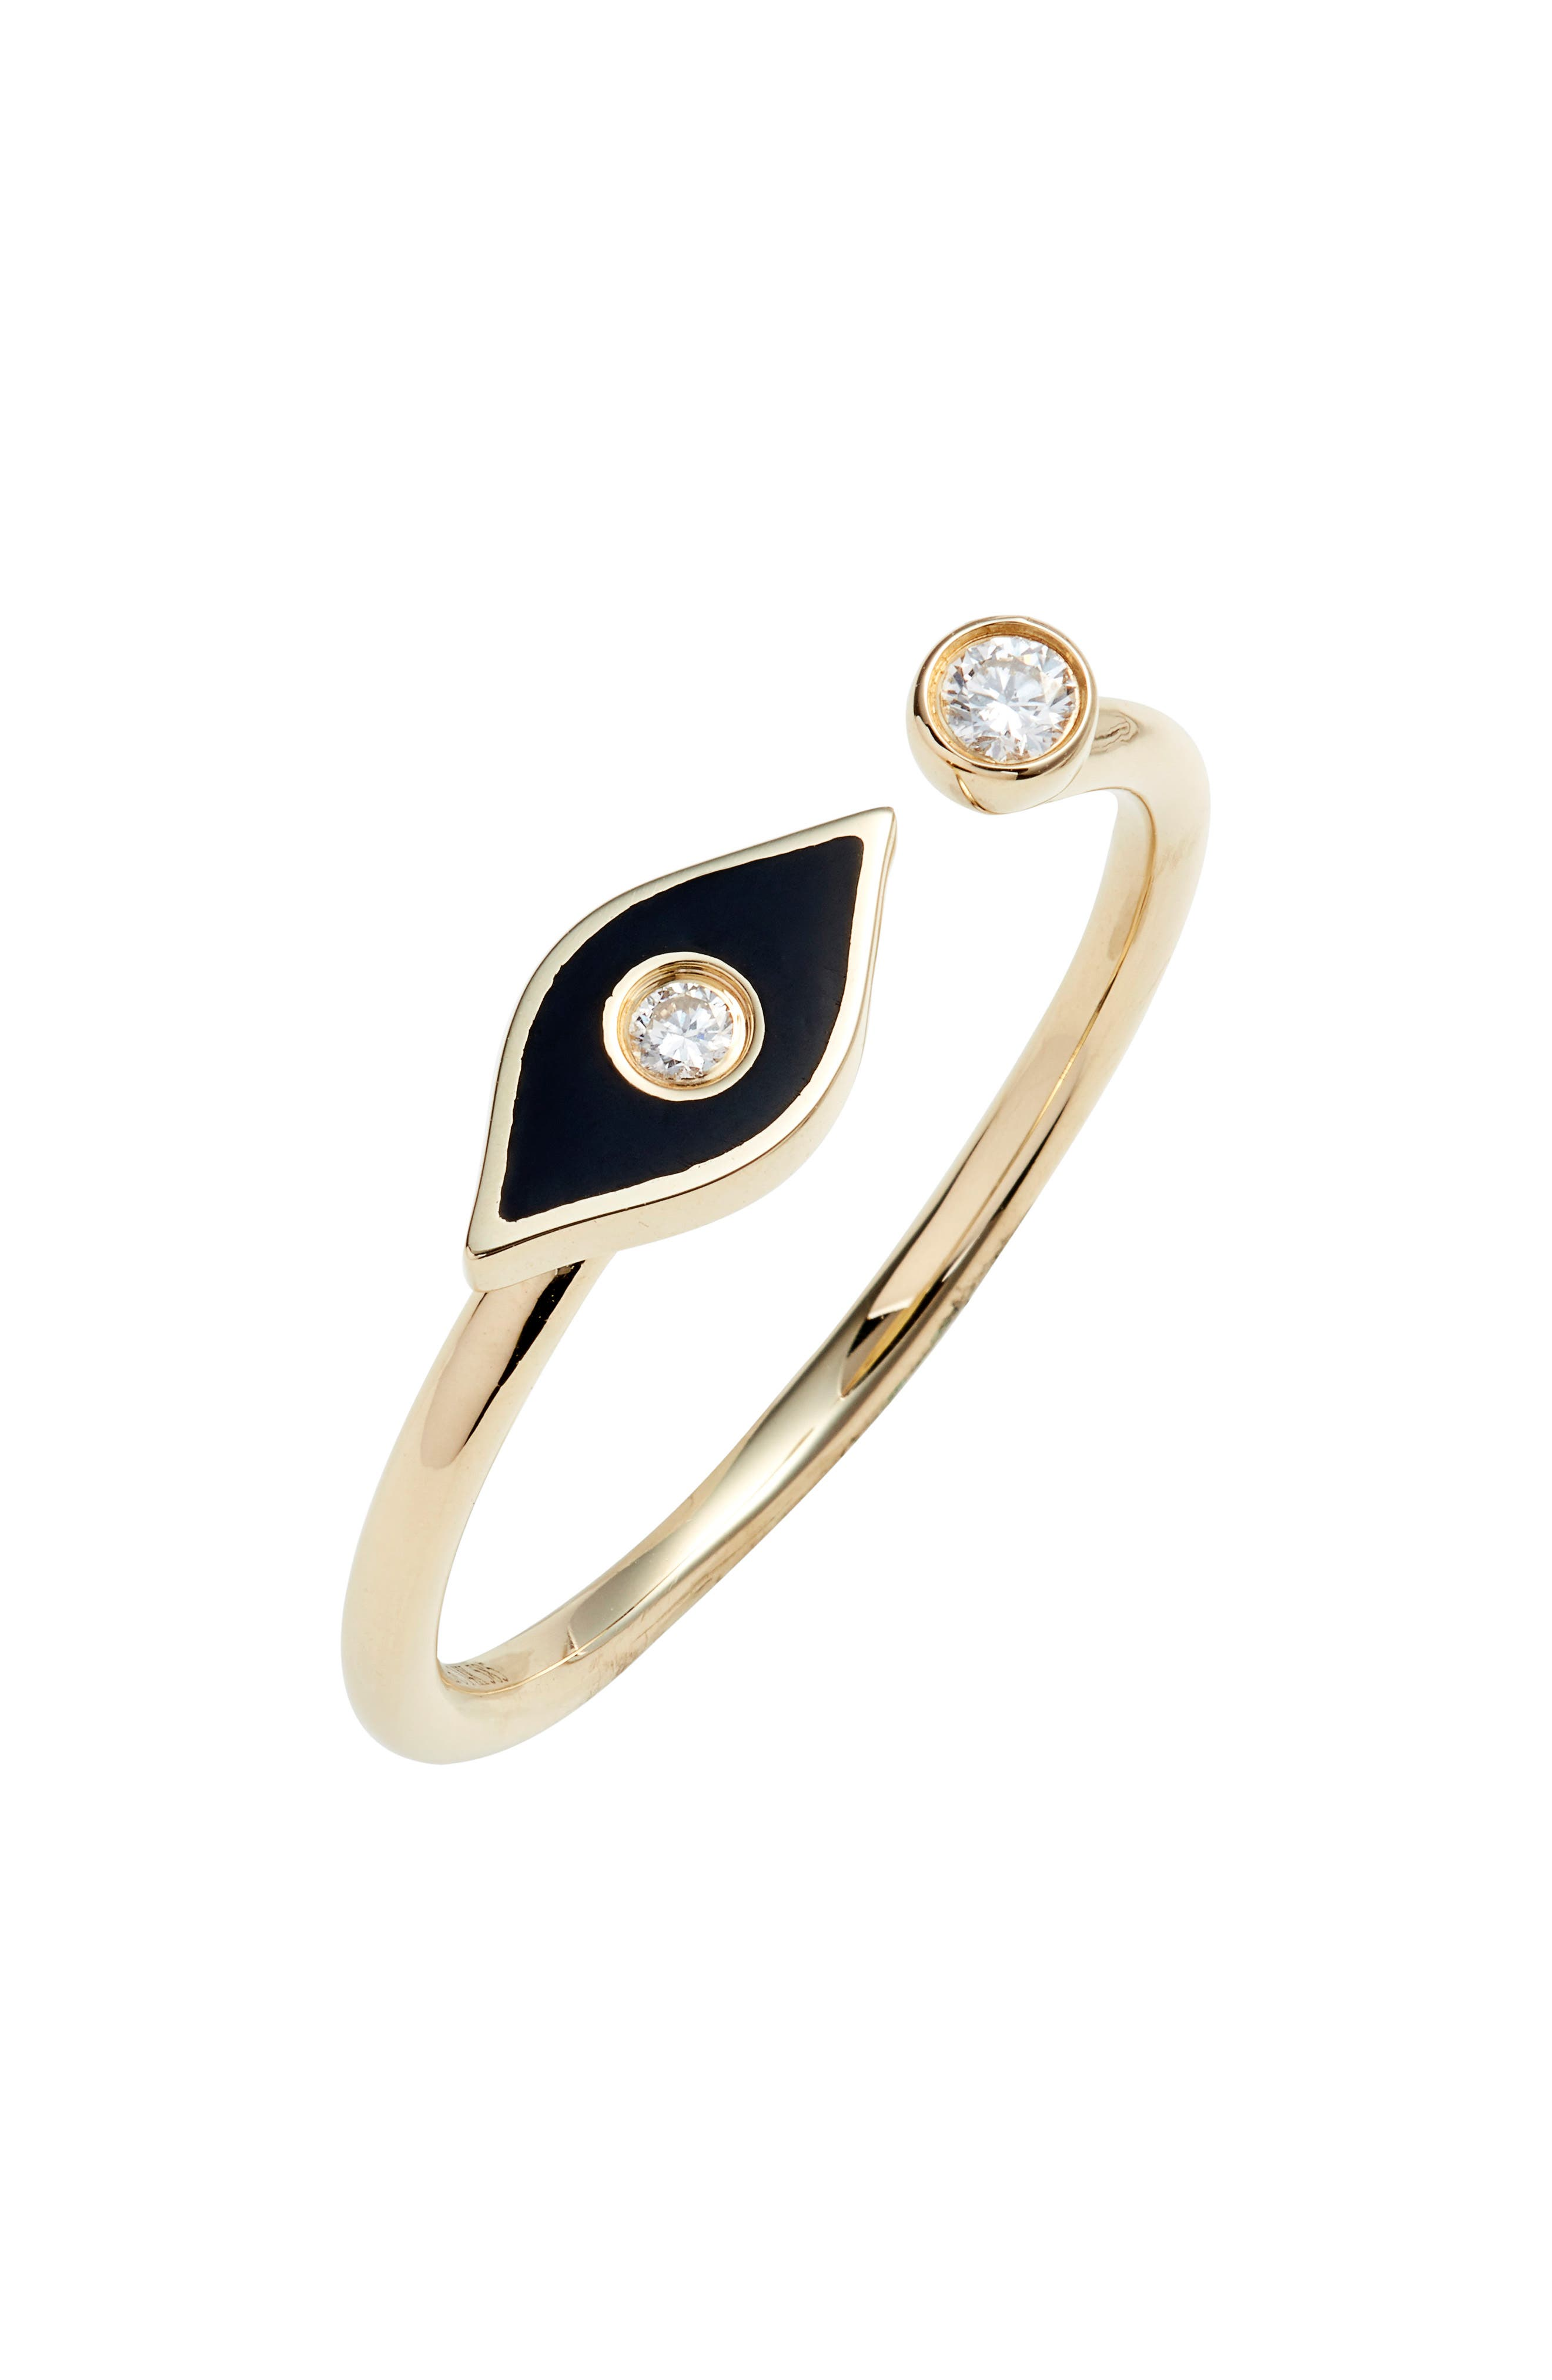 A dazzling diamond and black enamel form a protective evil eye on this delicate 14-karat-gold ring perfect for stacking with your other favorite styles. Style Name: Ef Collection Evil Eye Diamond Open Ring. Style Number: 5863735. Available in stores.